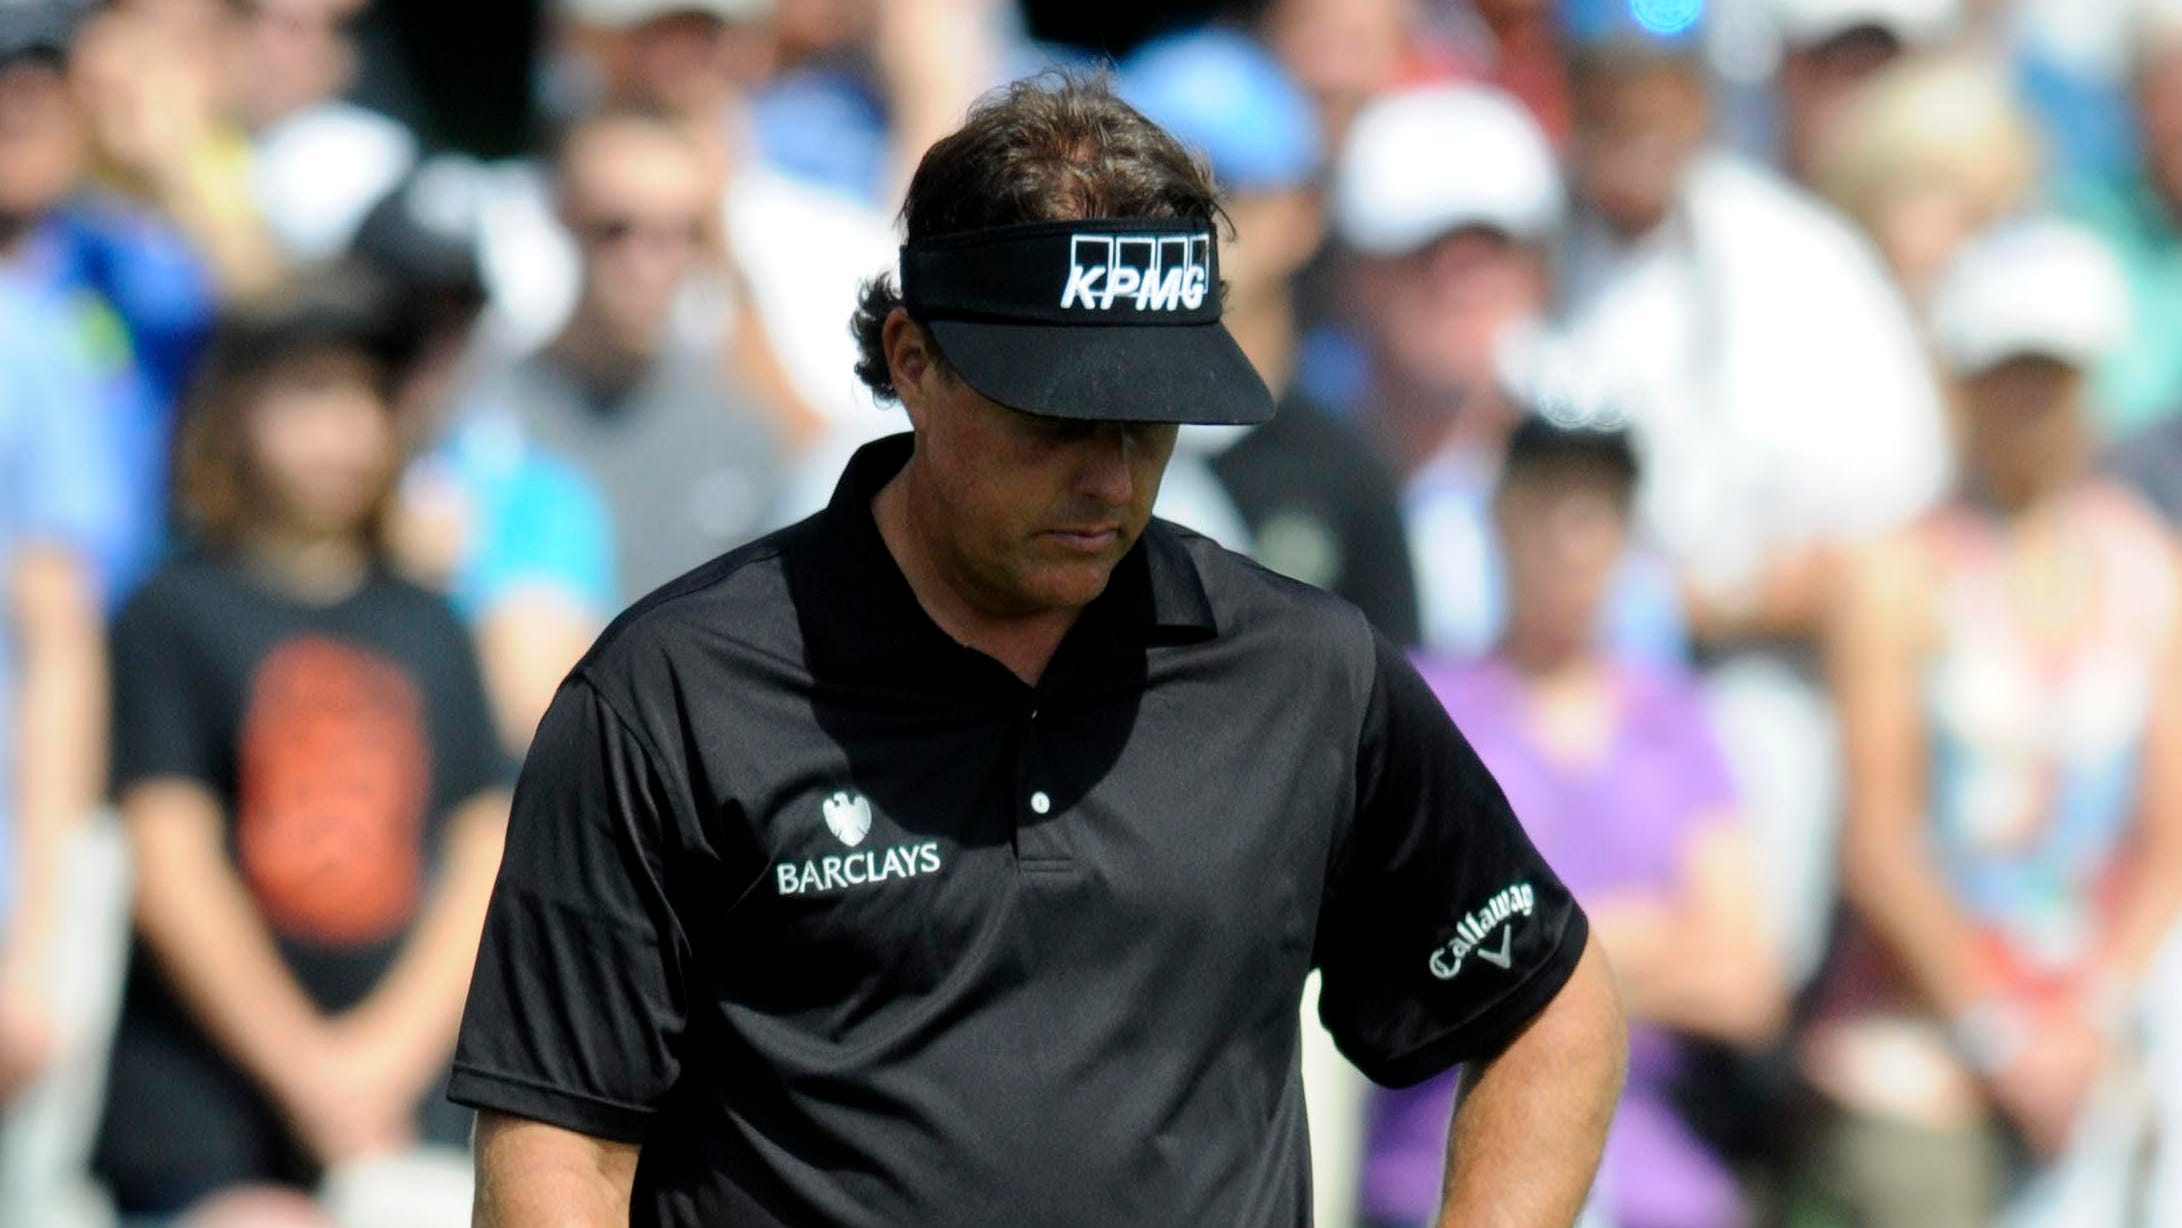 Phil Mickelson waits to putt on the 5th green.